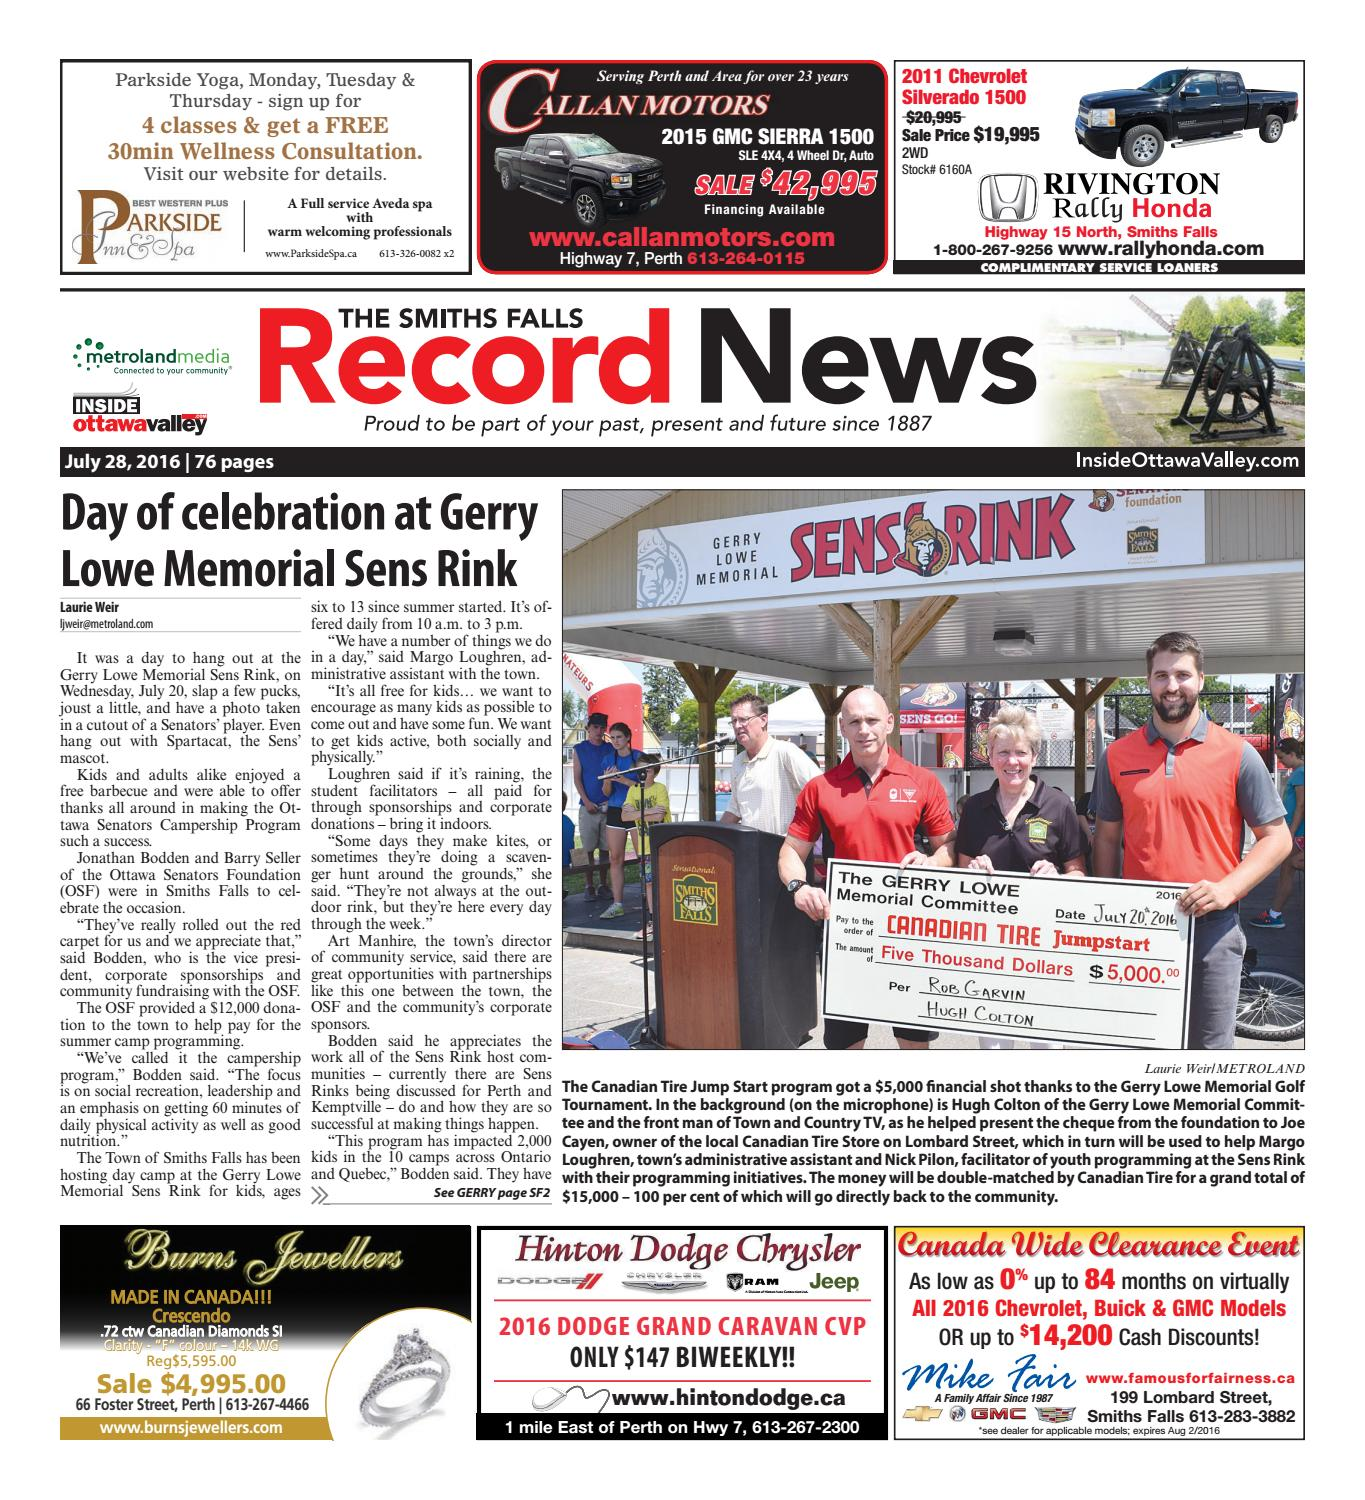 Smithsfalls072816 by Metroland East - Smiths Falls Record News - issuu